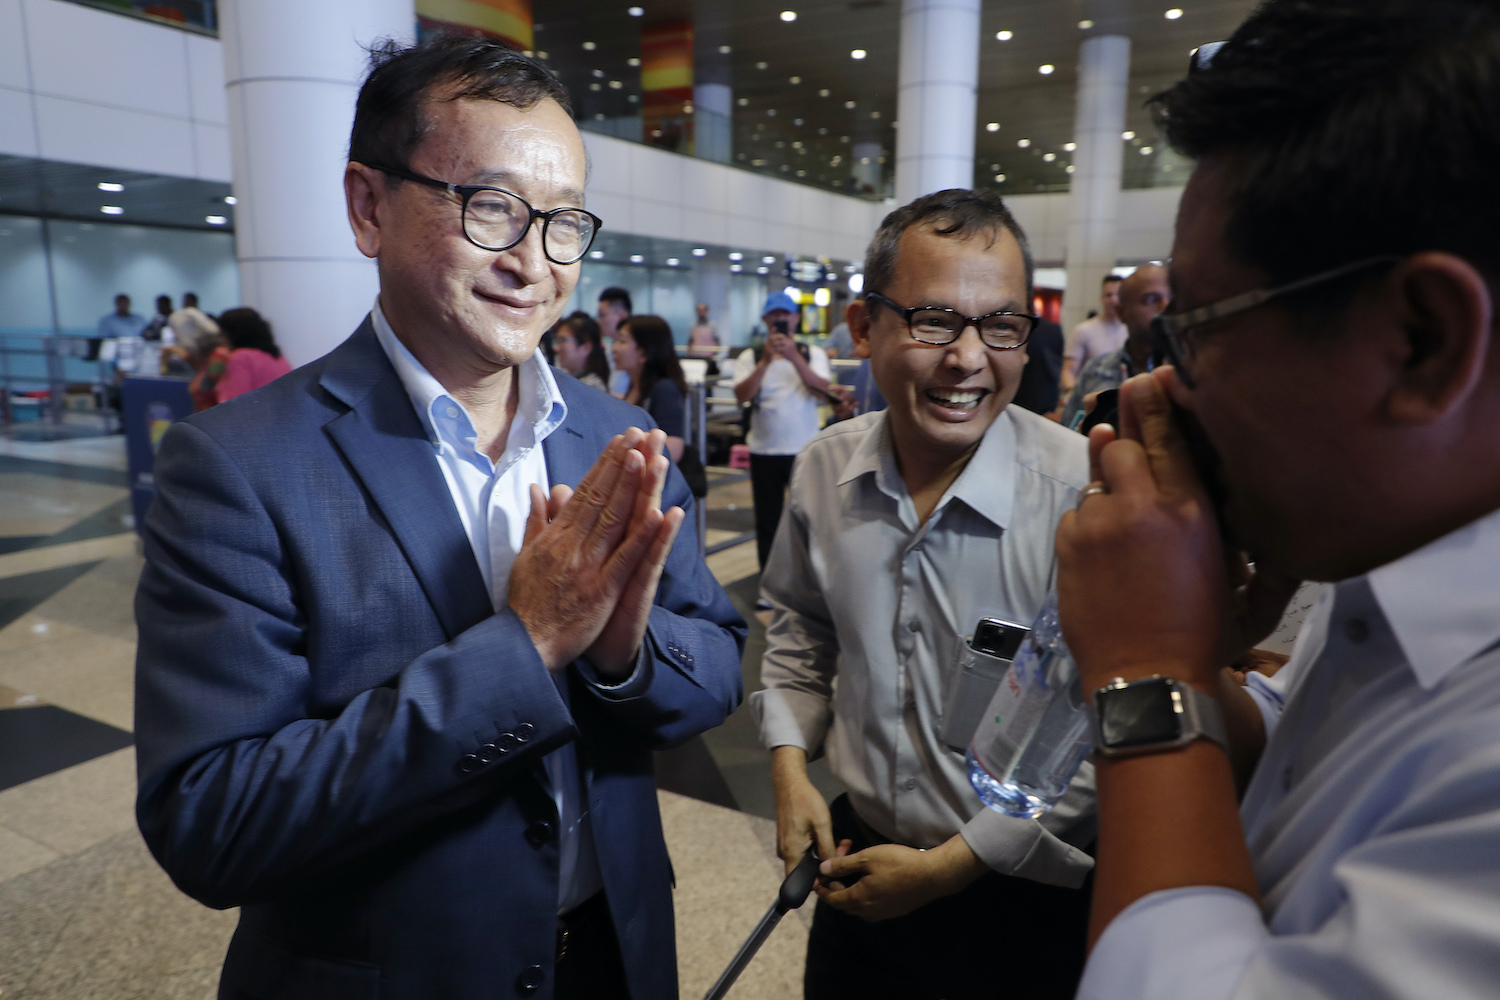 Sam Rainsy greets supporters after arriving at Kuala Lumpur International Airport in Malaysia on Saturday. (AP photo)